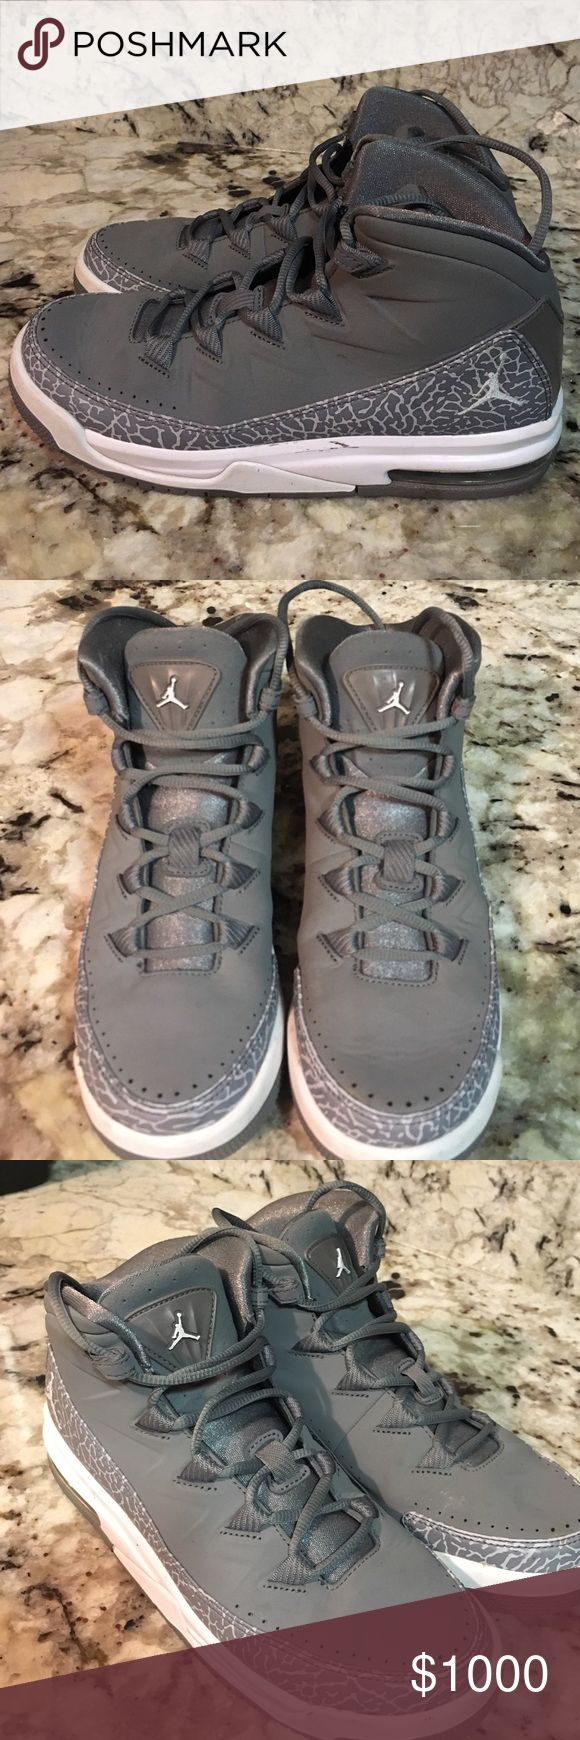 Jordan's MAKE OFFER Super cute, pretty good condition, have been warned though, there are creases but not that does the ball, there are some dirt stains on the white bottom part not that noticeable either but they are used. Super cute and great addition to any closet. Amazing for sports and are very comfortable! ‼️Ignore listing price make me an offer or I will trade.‼️ size 7Y = women's 8, run just a little bit big so I would say fit 8.5 perfectly. 💕 have air max so have a lot of support…